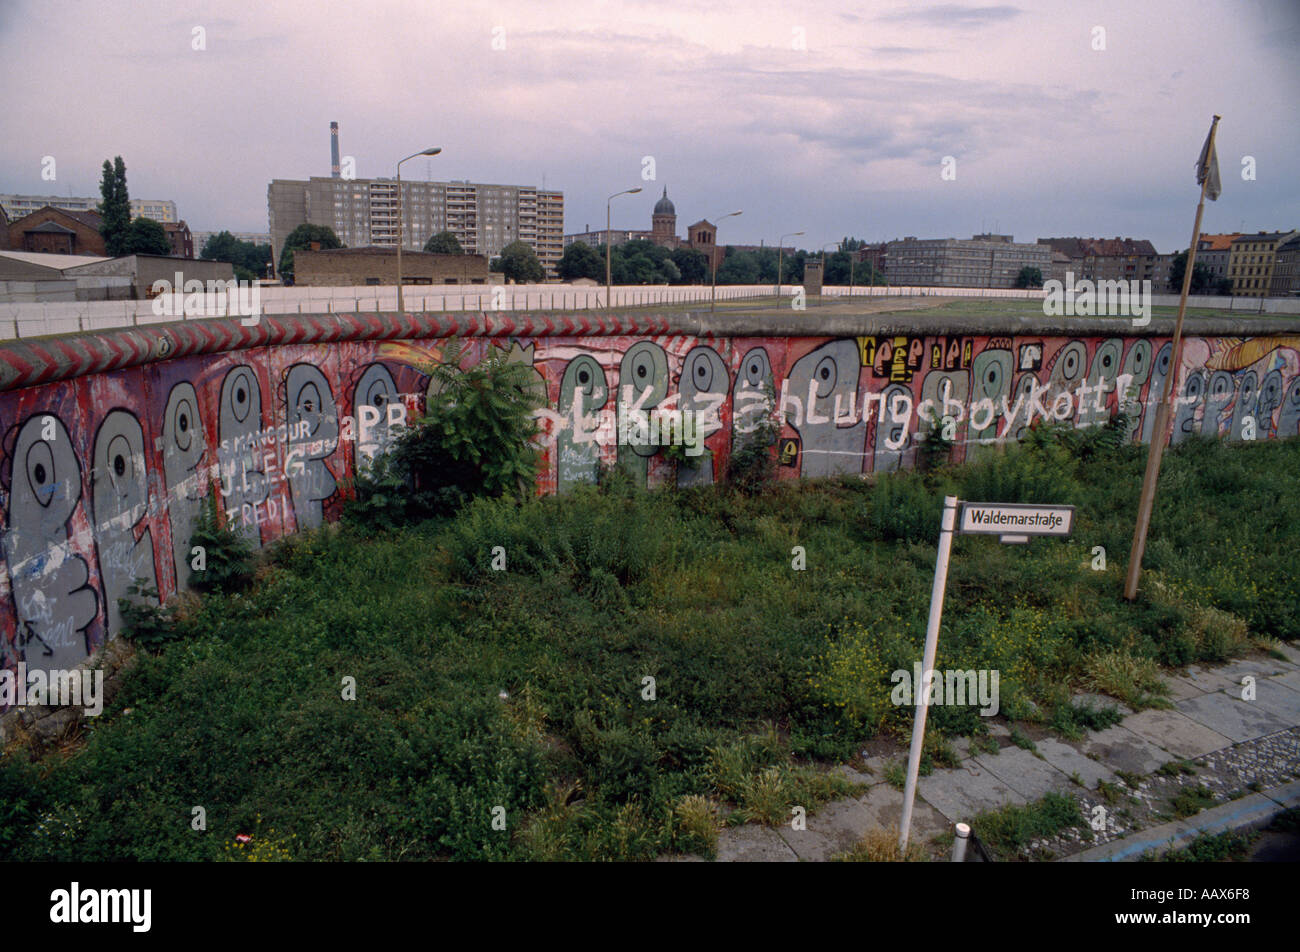 a history of the berlin wall in the germany In this lesson, we explore the history of the berlin wall, from its beginnings as a   germany's defeat in world war ii (wwii) presented a bit of a problem for the.